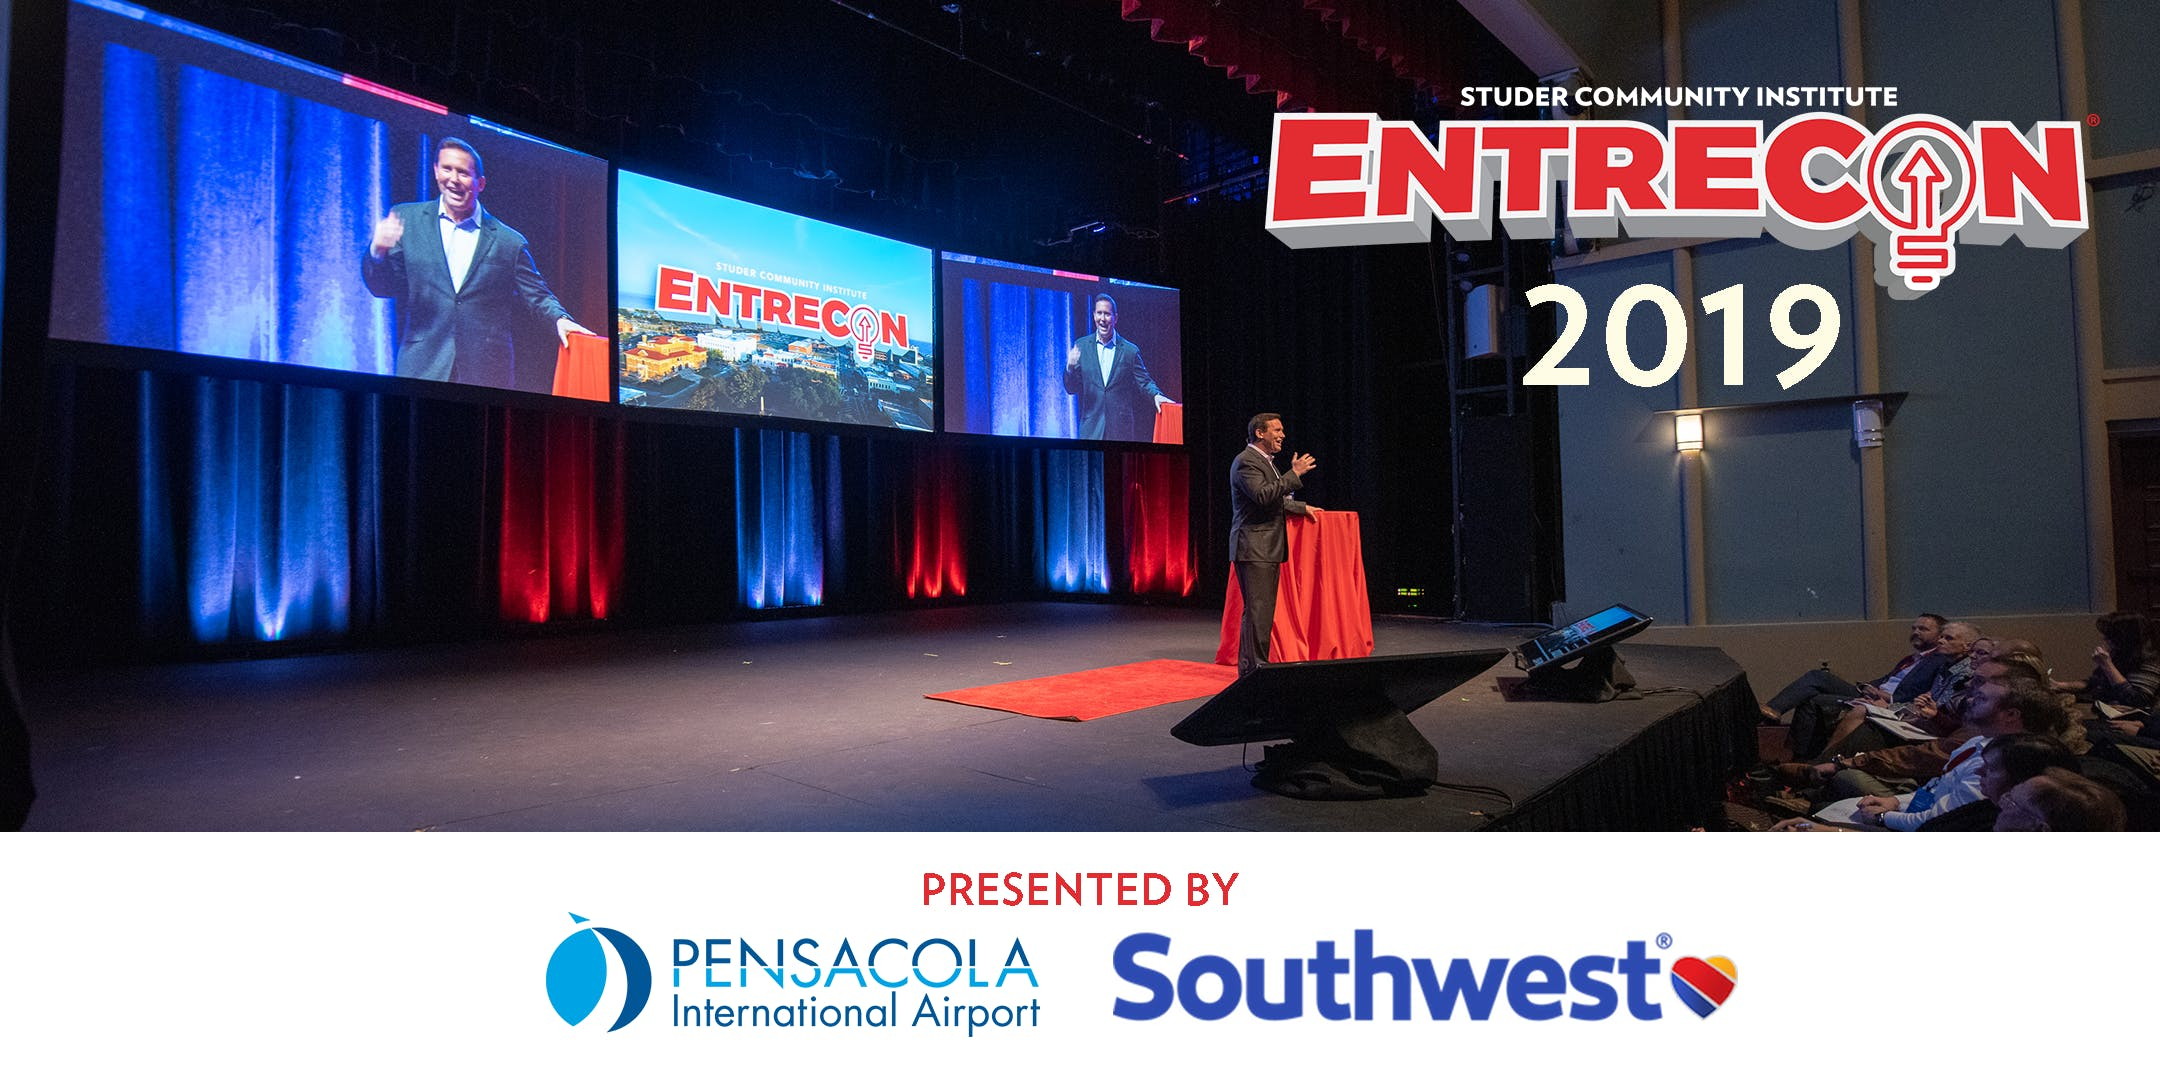 EntreCon 2019 sponsored by Pensacola Airport and Southwest Airlines